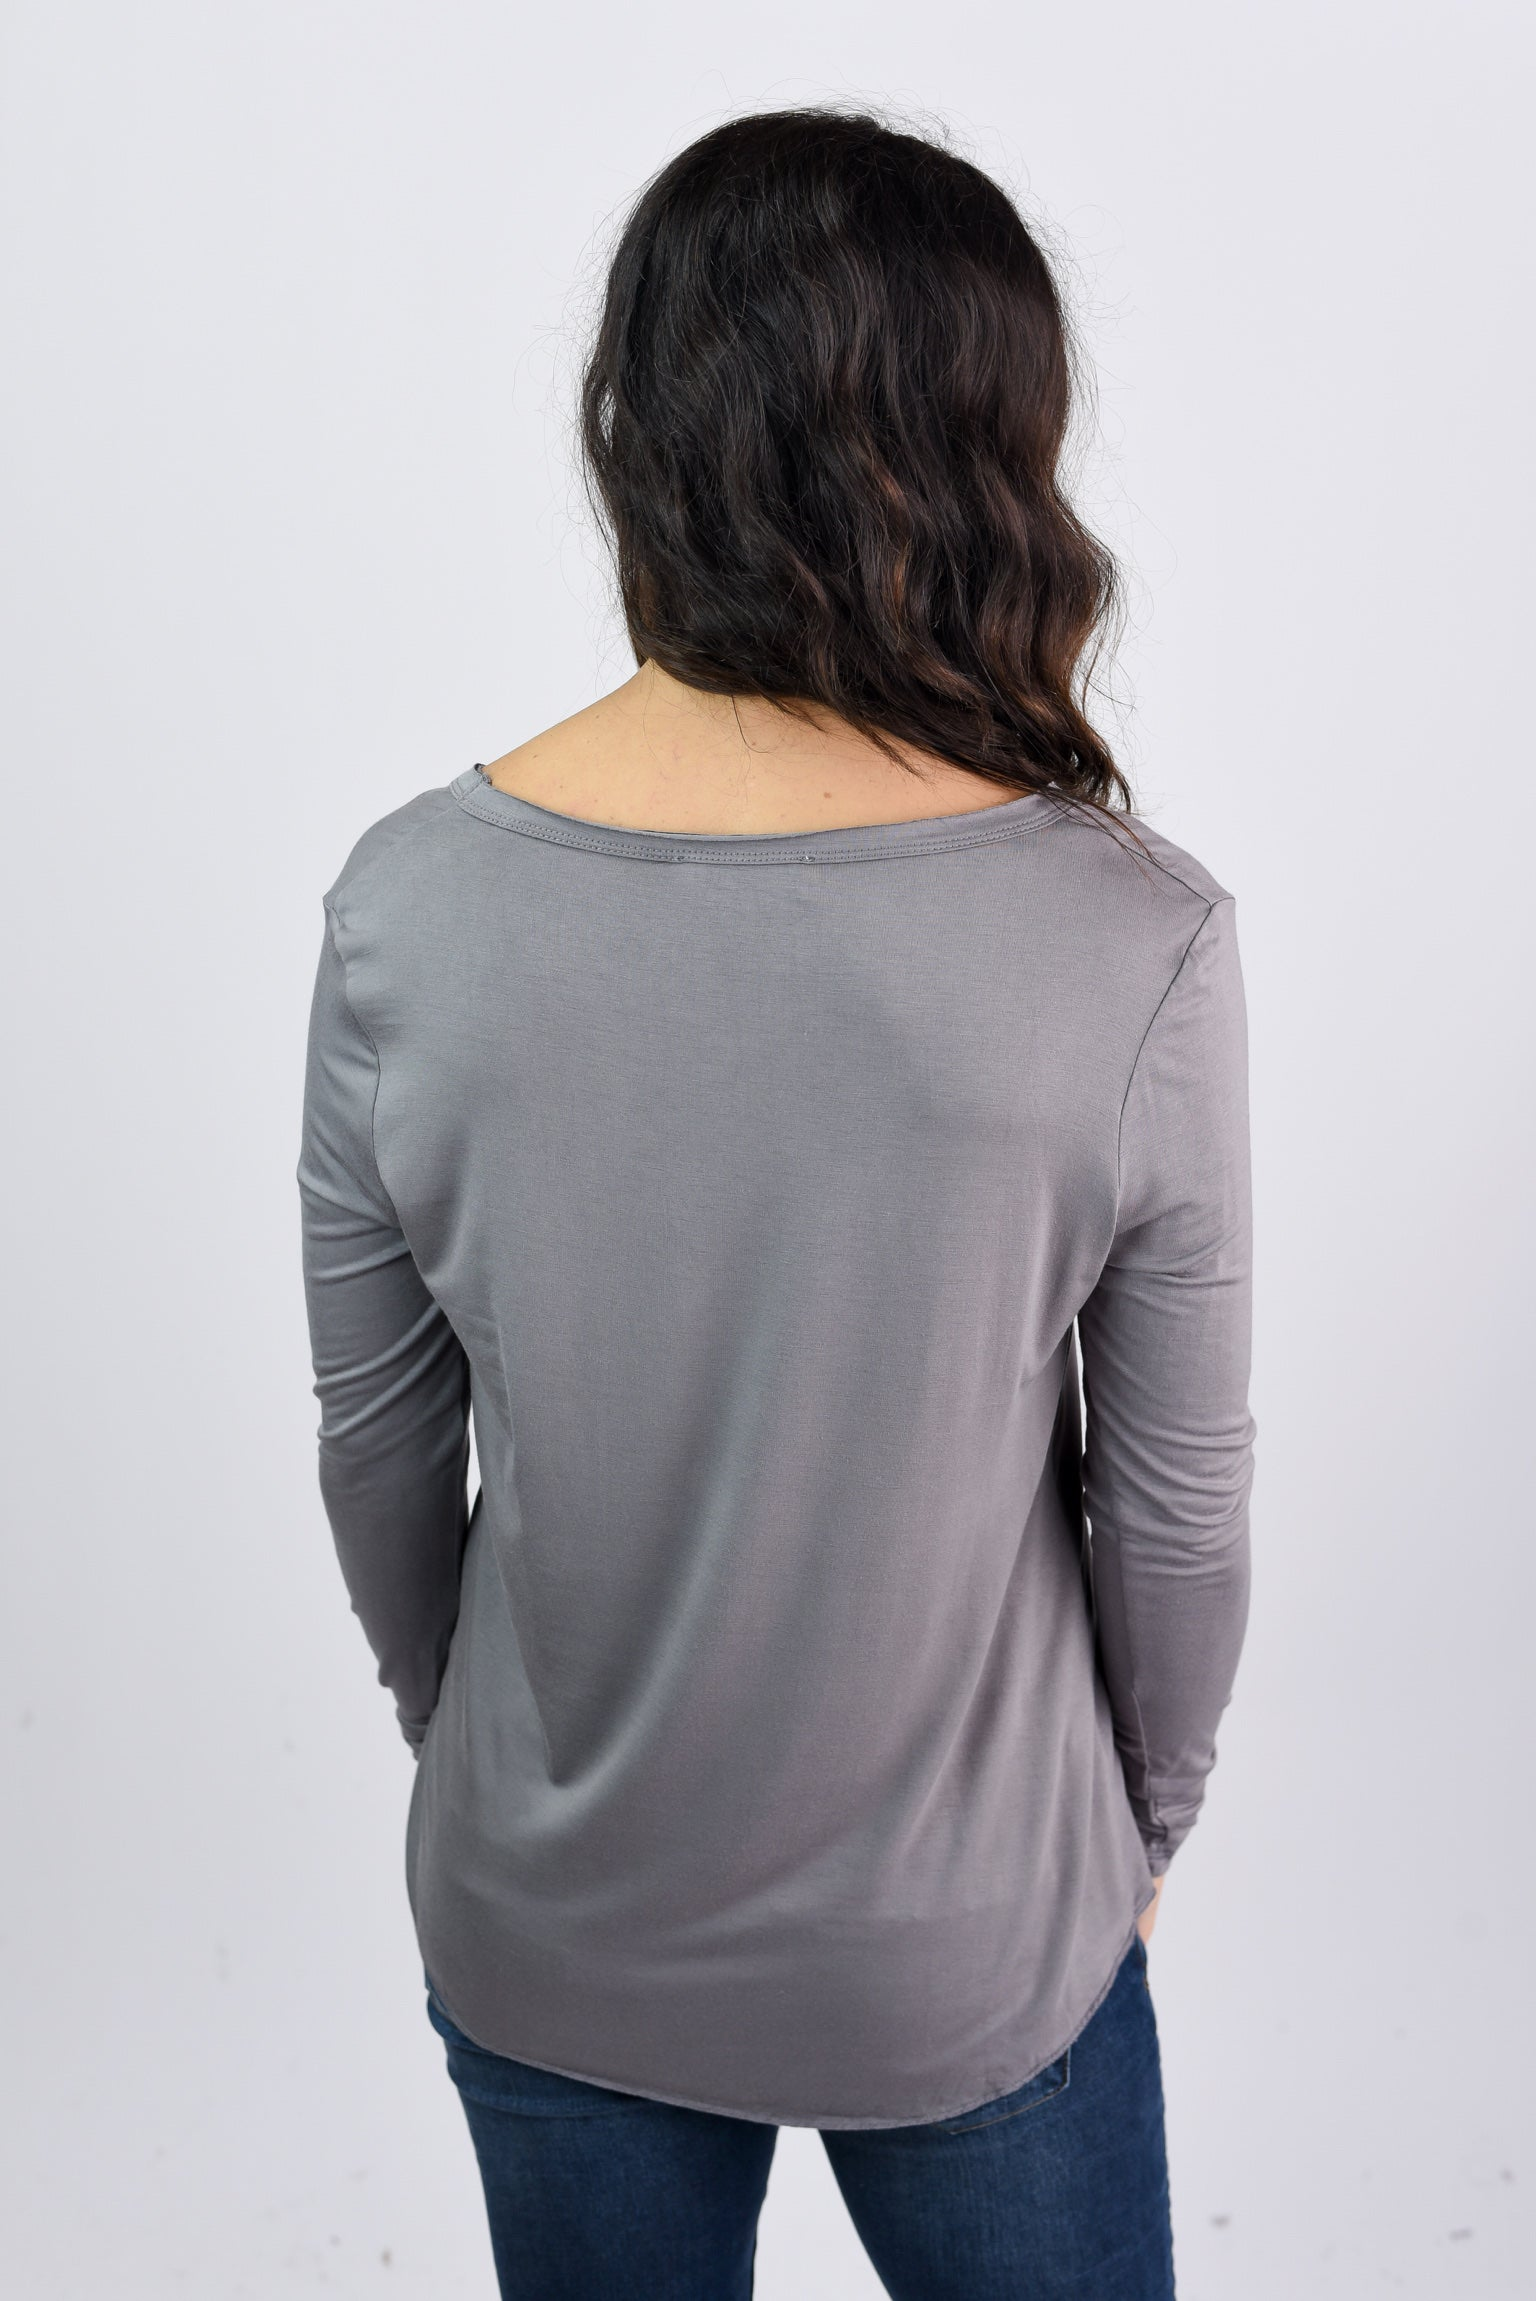 See The Whole World Vneck The Basic Long Sleeve - Slate Grey